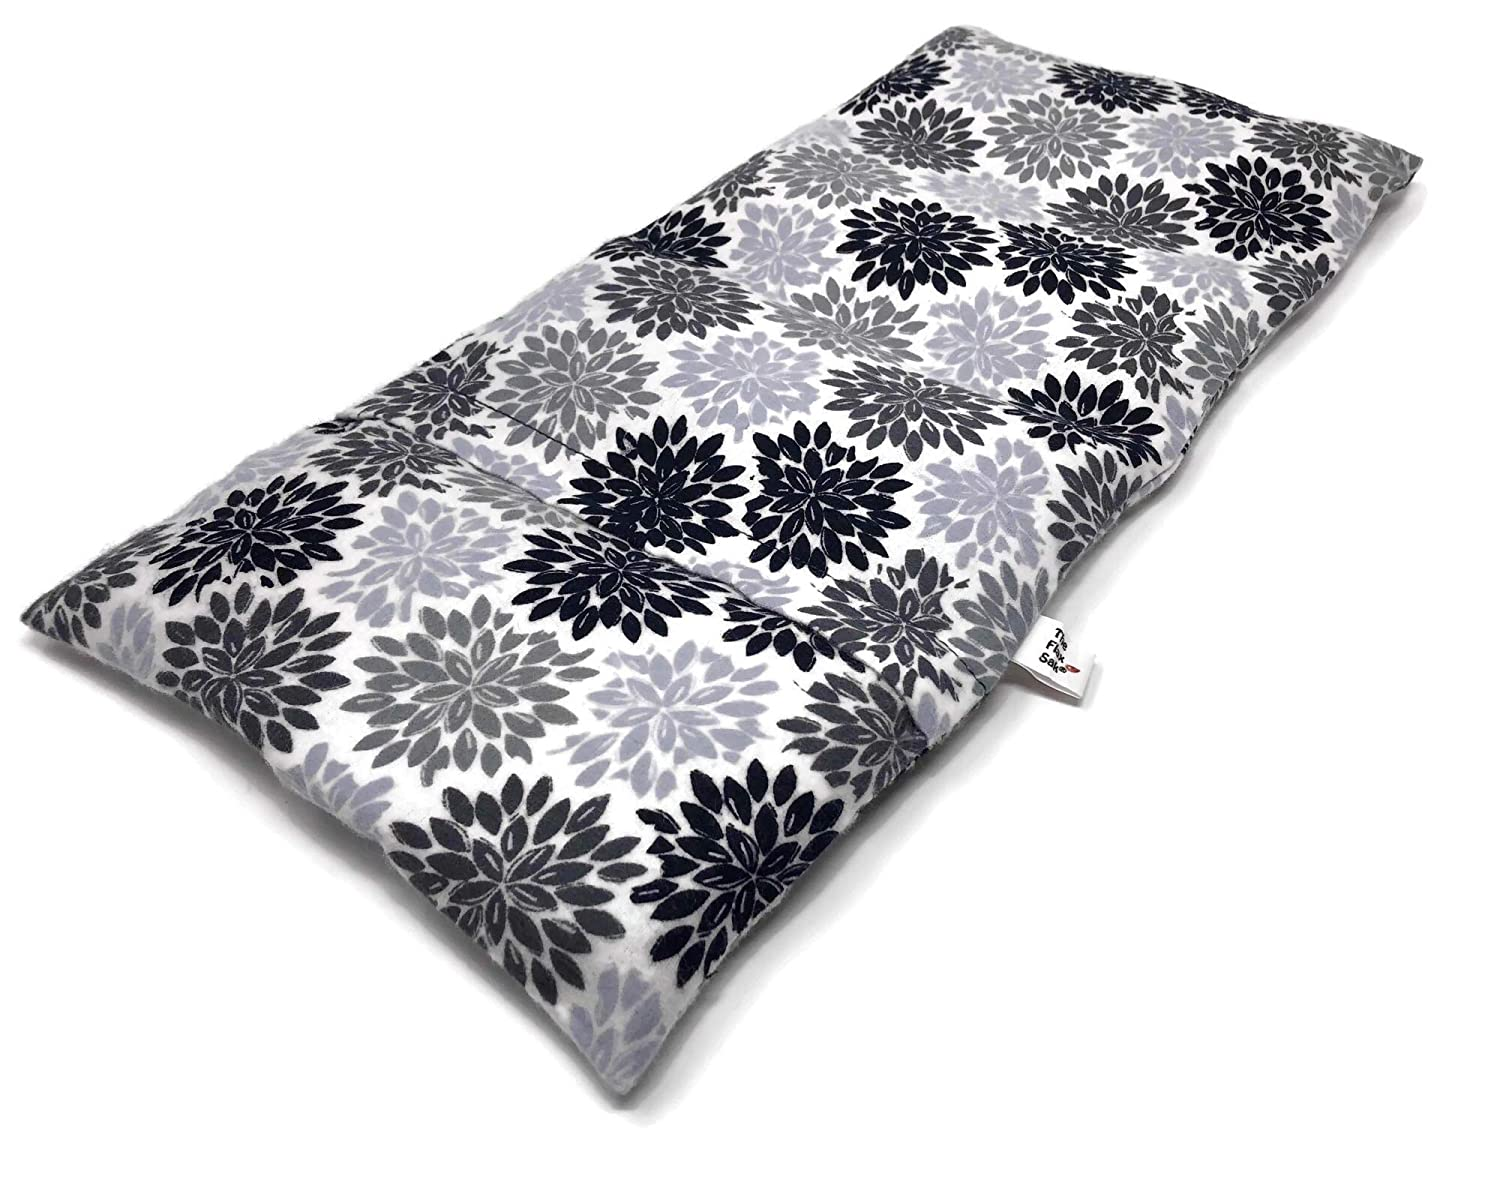 Microwavable Heating Pad | Muscle Pain Relief | Moist Heat | Cold Compress with Washable Cover | Lavender Scented | Handmade in the U.S.A. | Black and Grey Flower